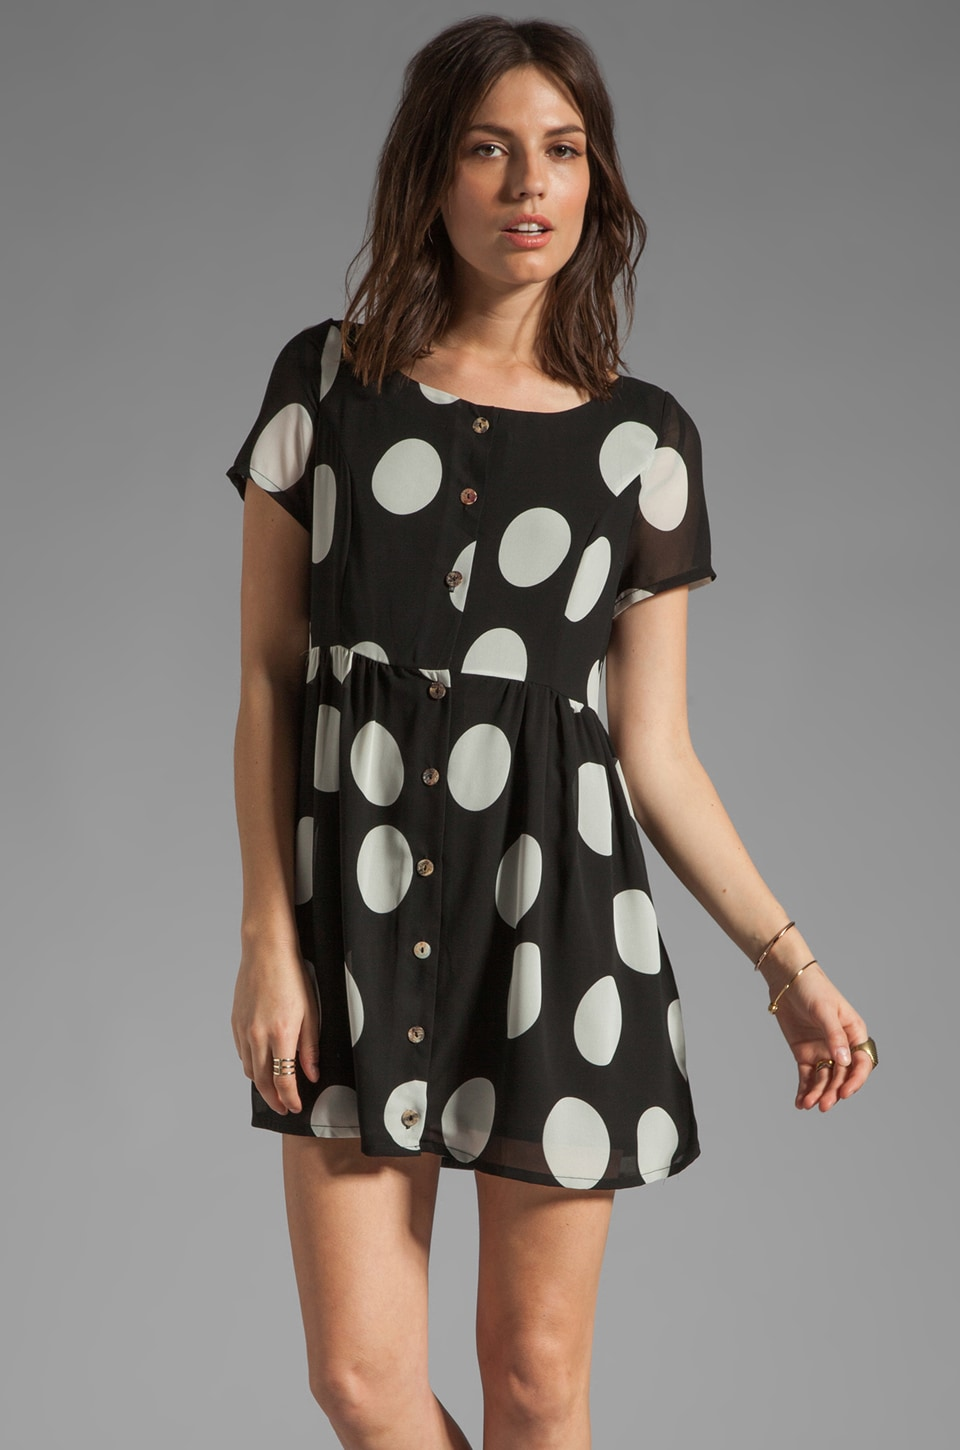 MINKPINK Clowning Around Babydoll Dress in Black/White